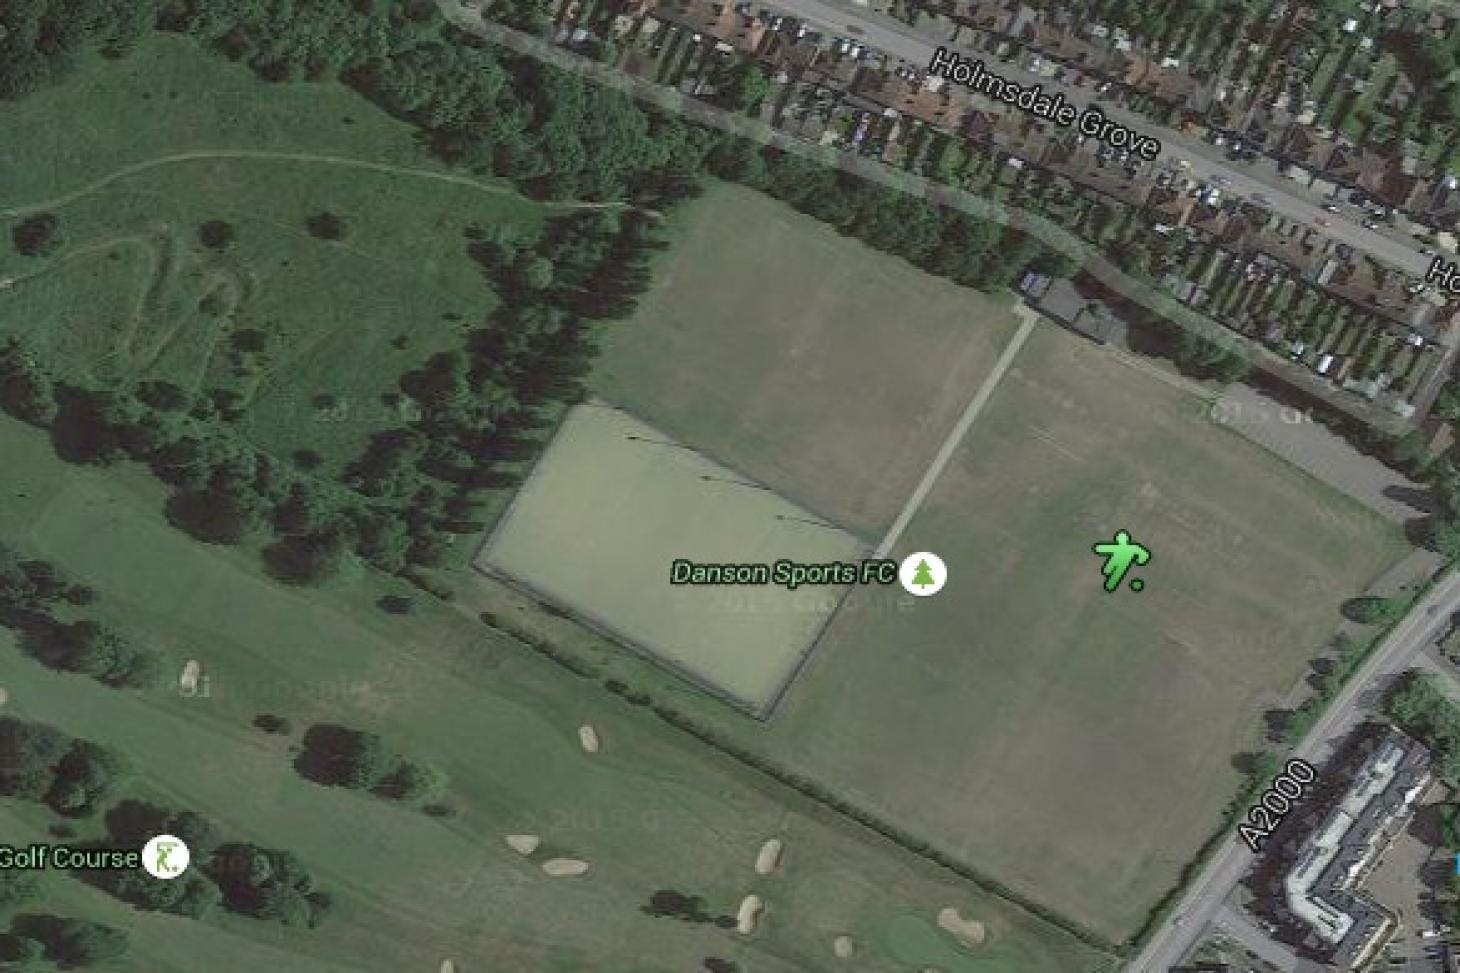 Mayplace Recreation Ground (Danson Sports Football Club) 11 a side | Grass football pitch